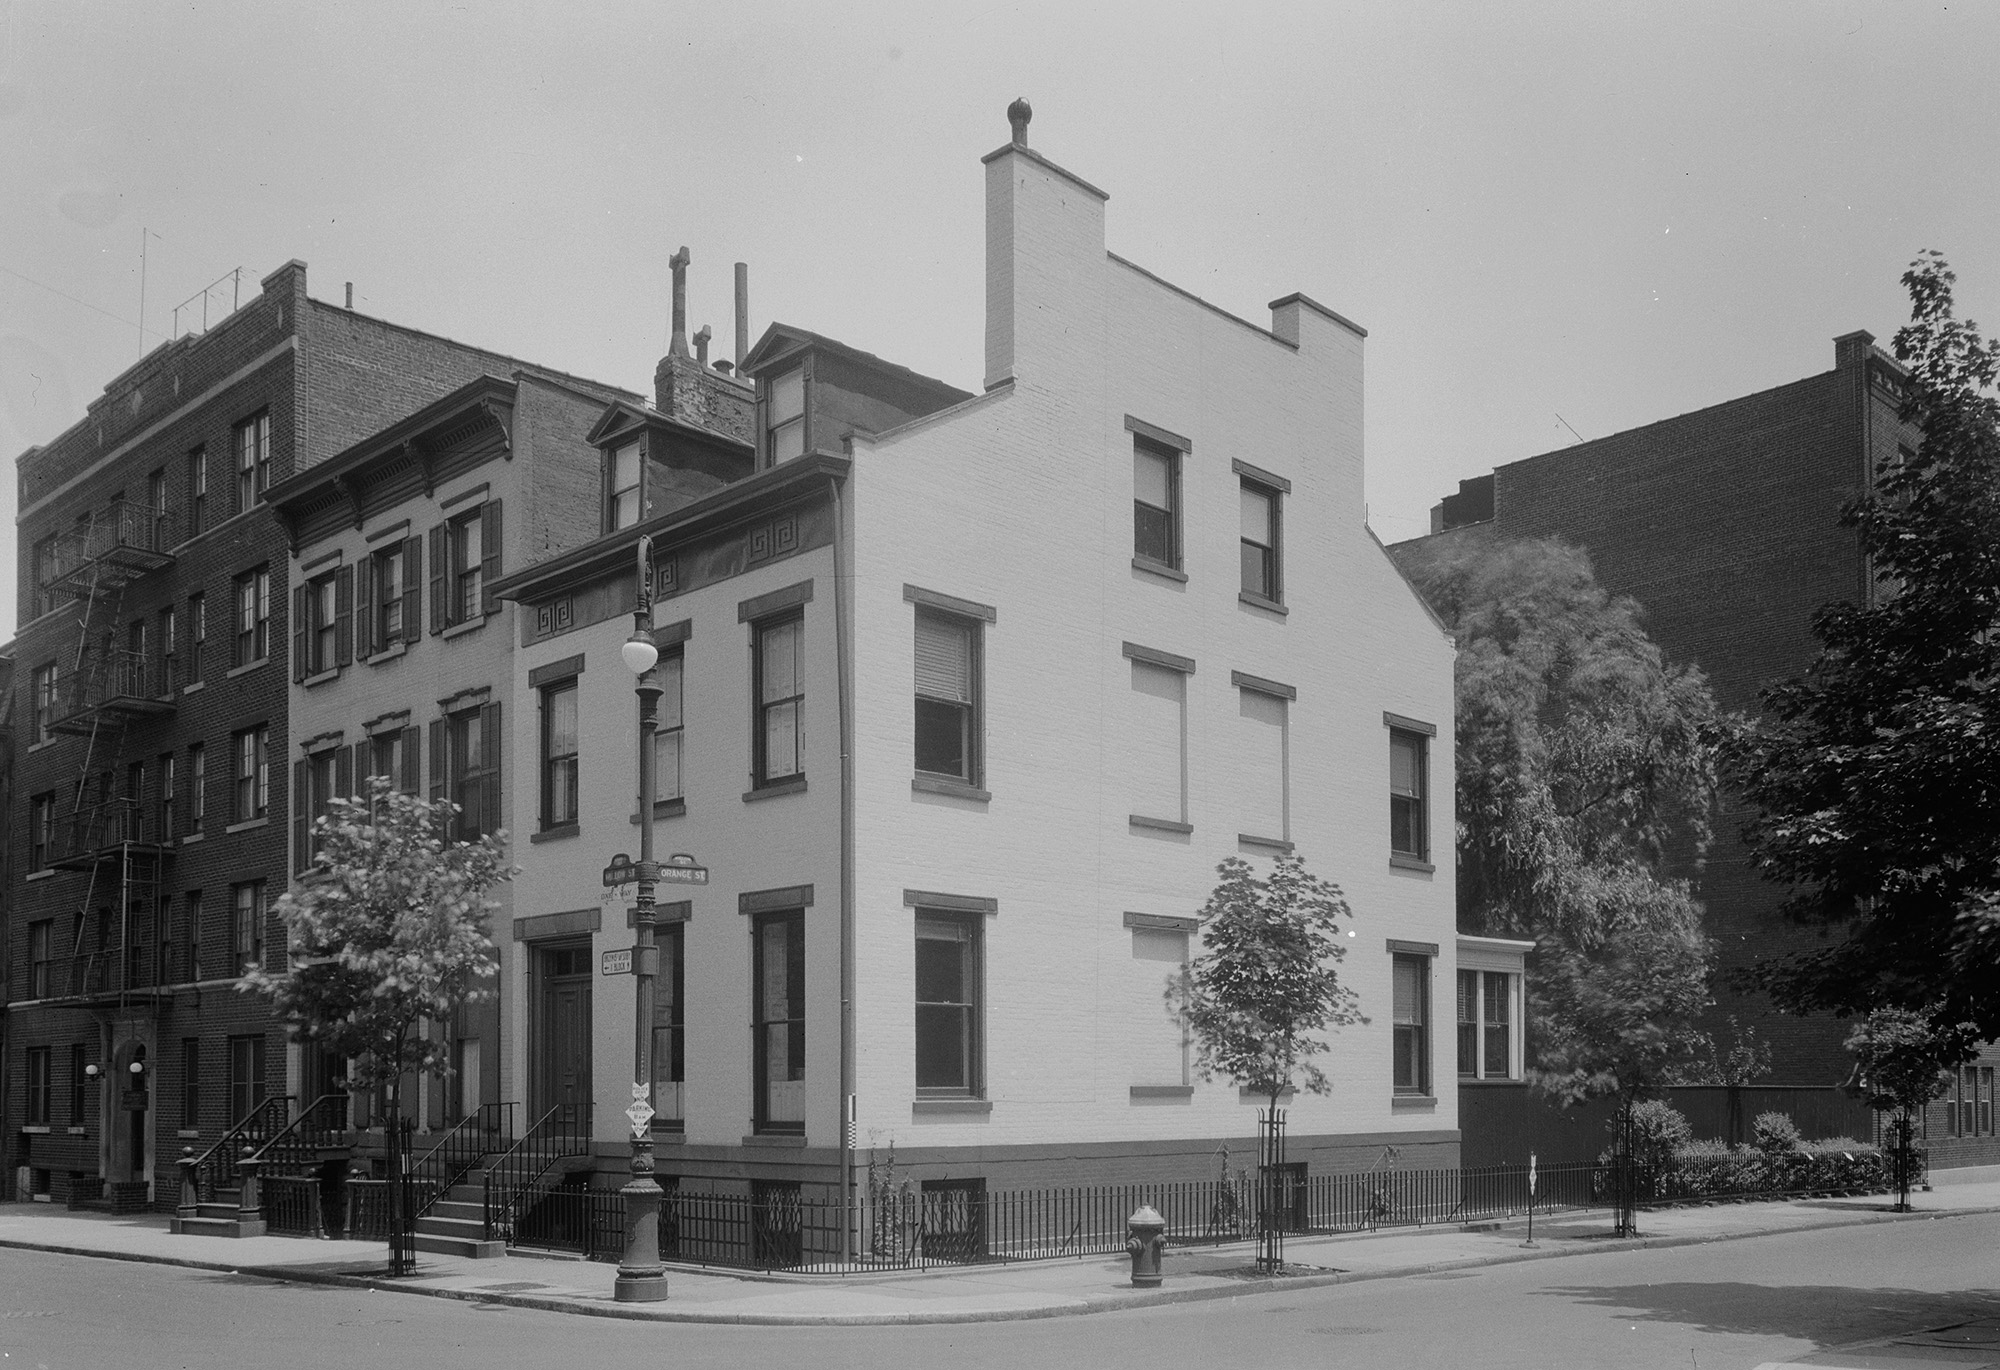 hight resolution of uncover the history of your home with tips from brooklyn historical society